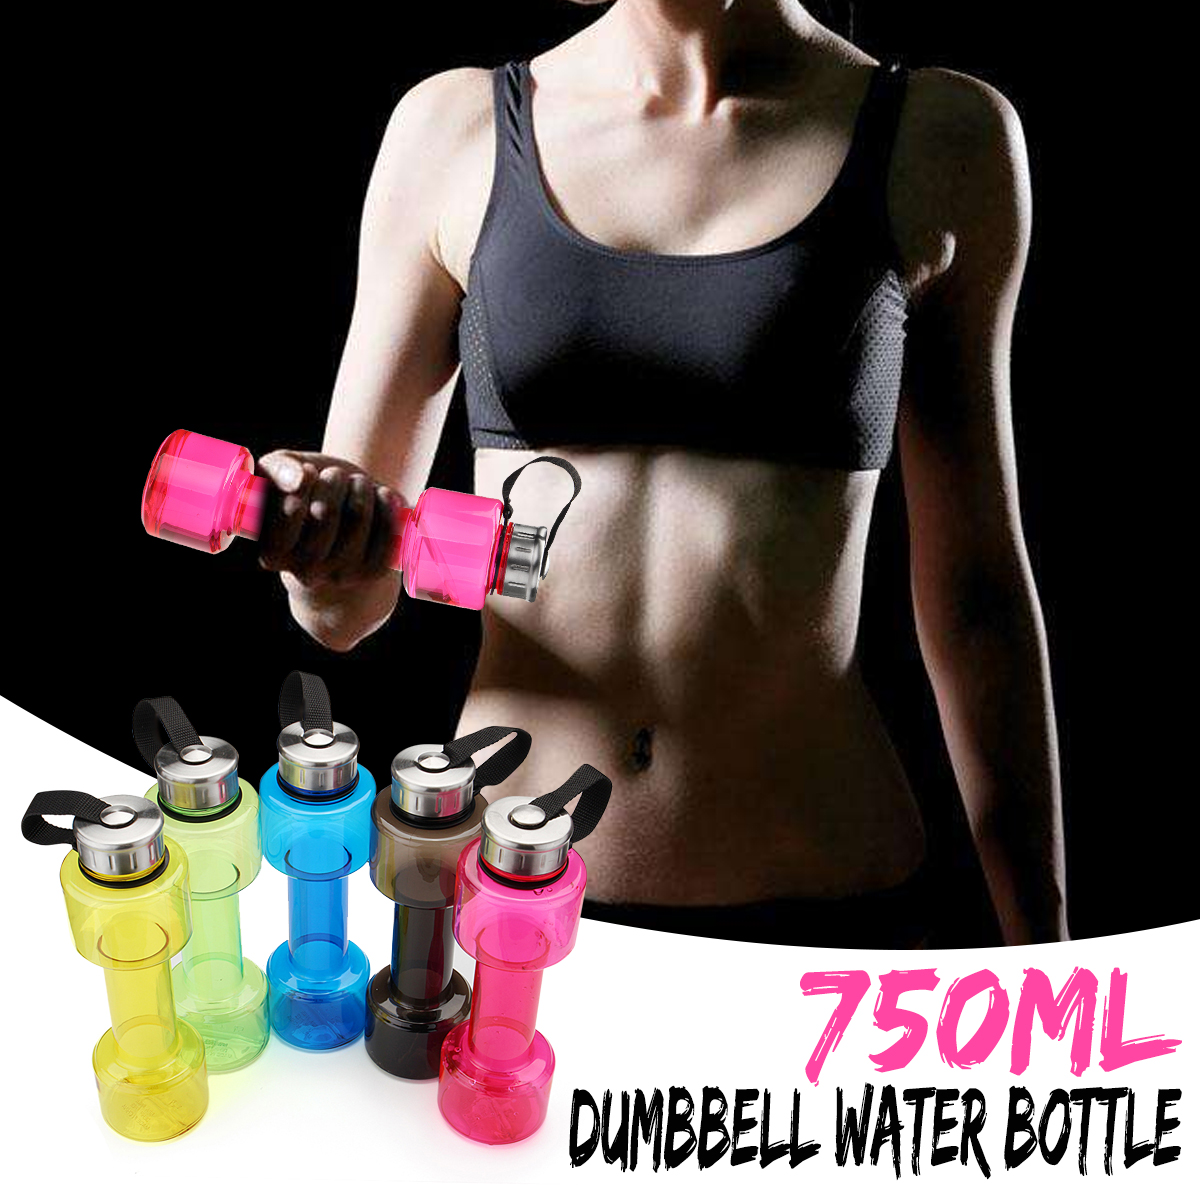 750ML Dumbbell Shaped Water Bottle Sport Drink Kettle Exercise Gym Protein Shake Weight